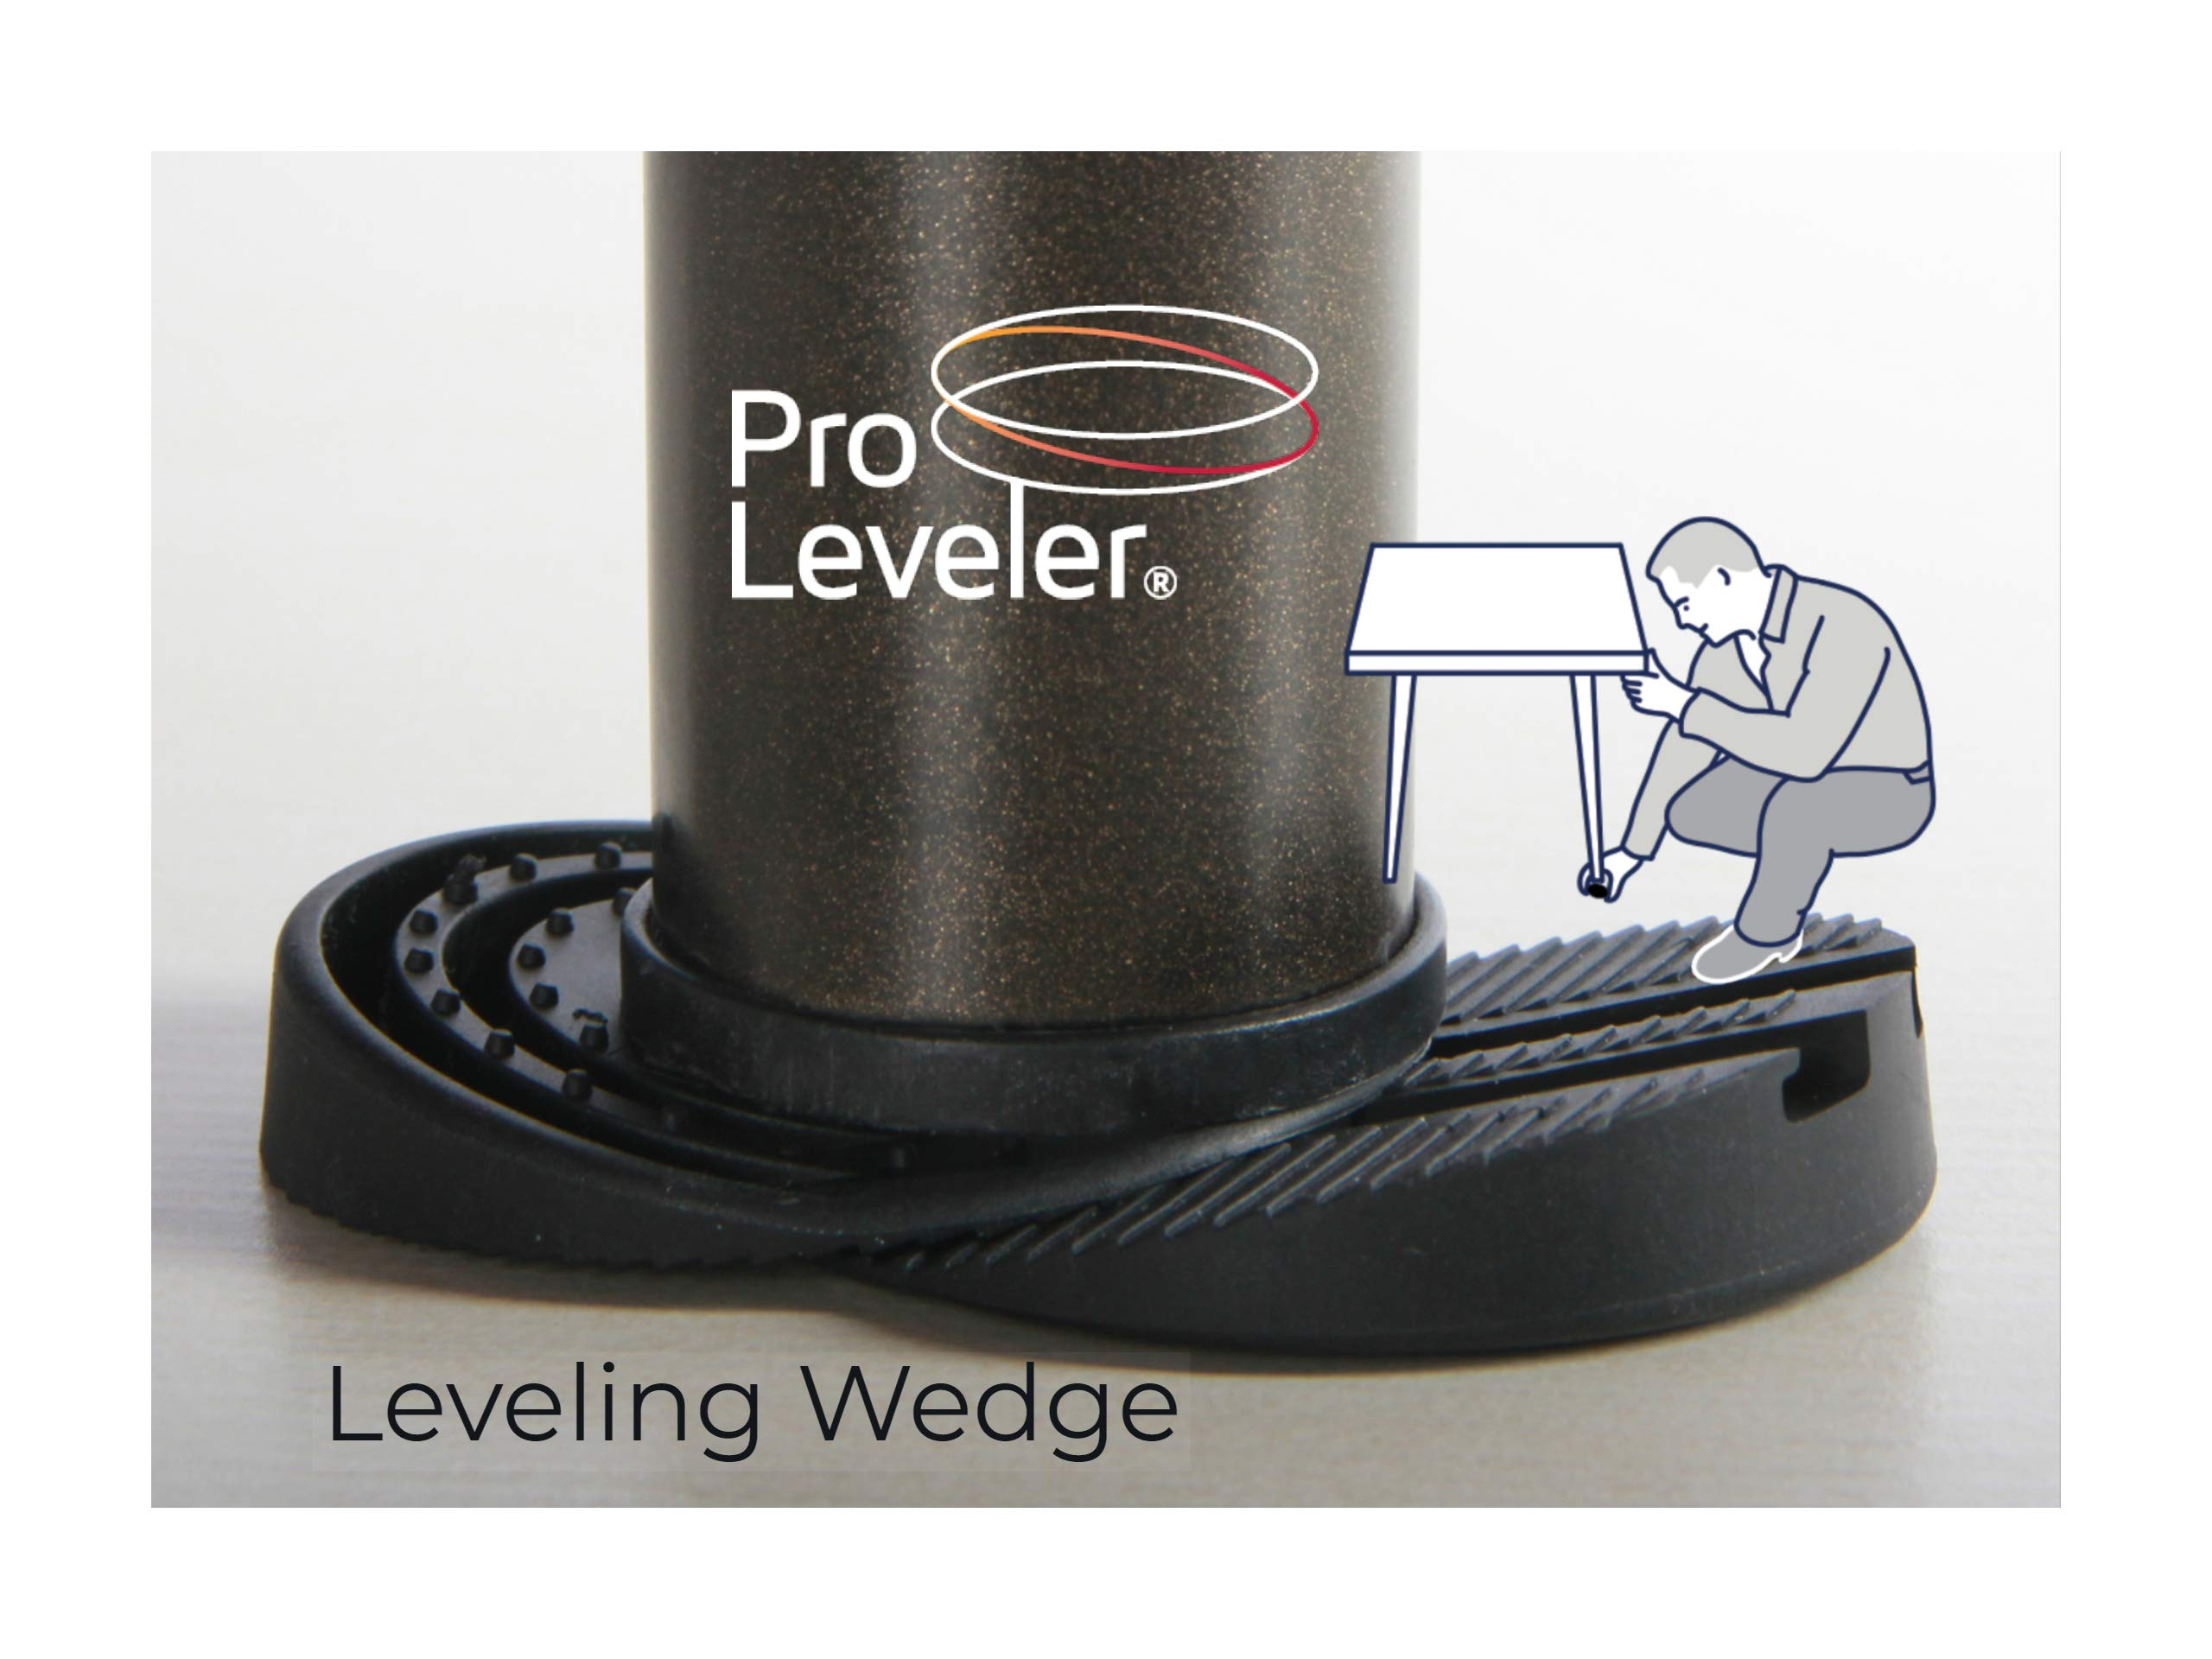 Leveling Wedge 2-Set Pack $6.00 for Wobbly Patio